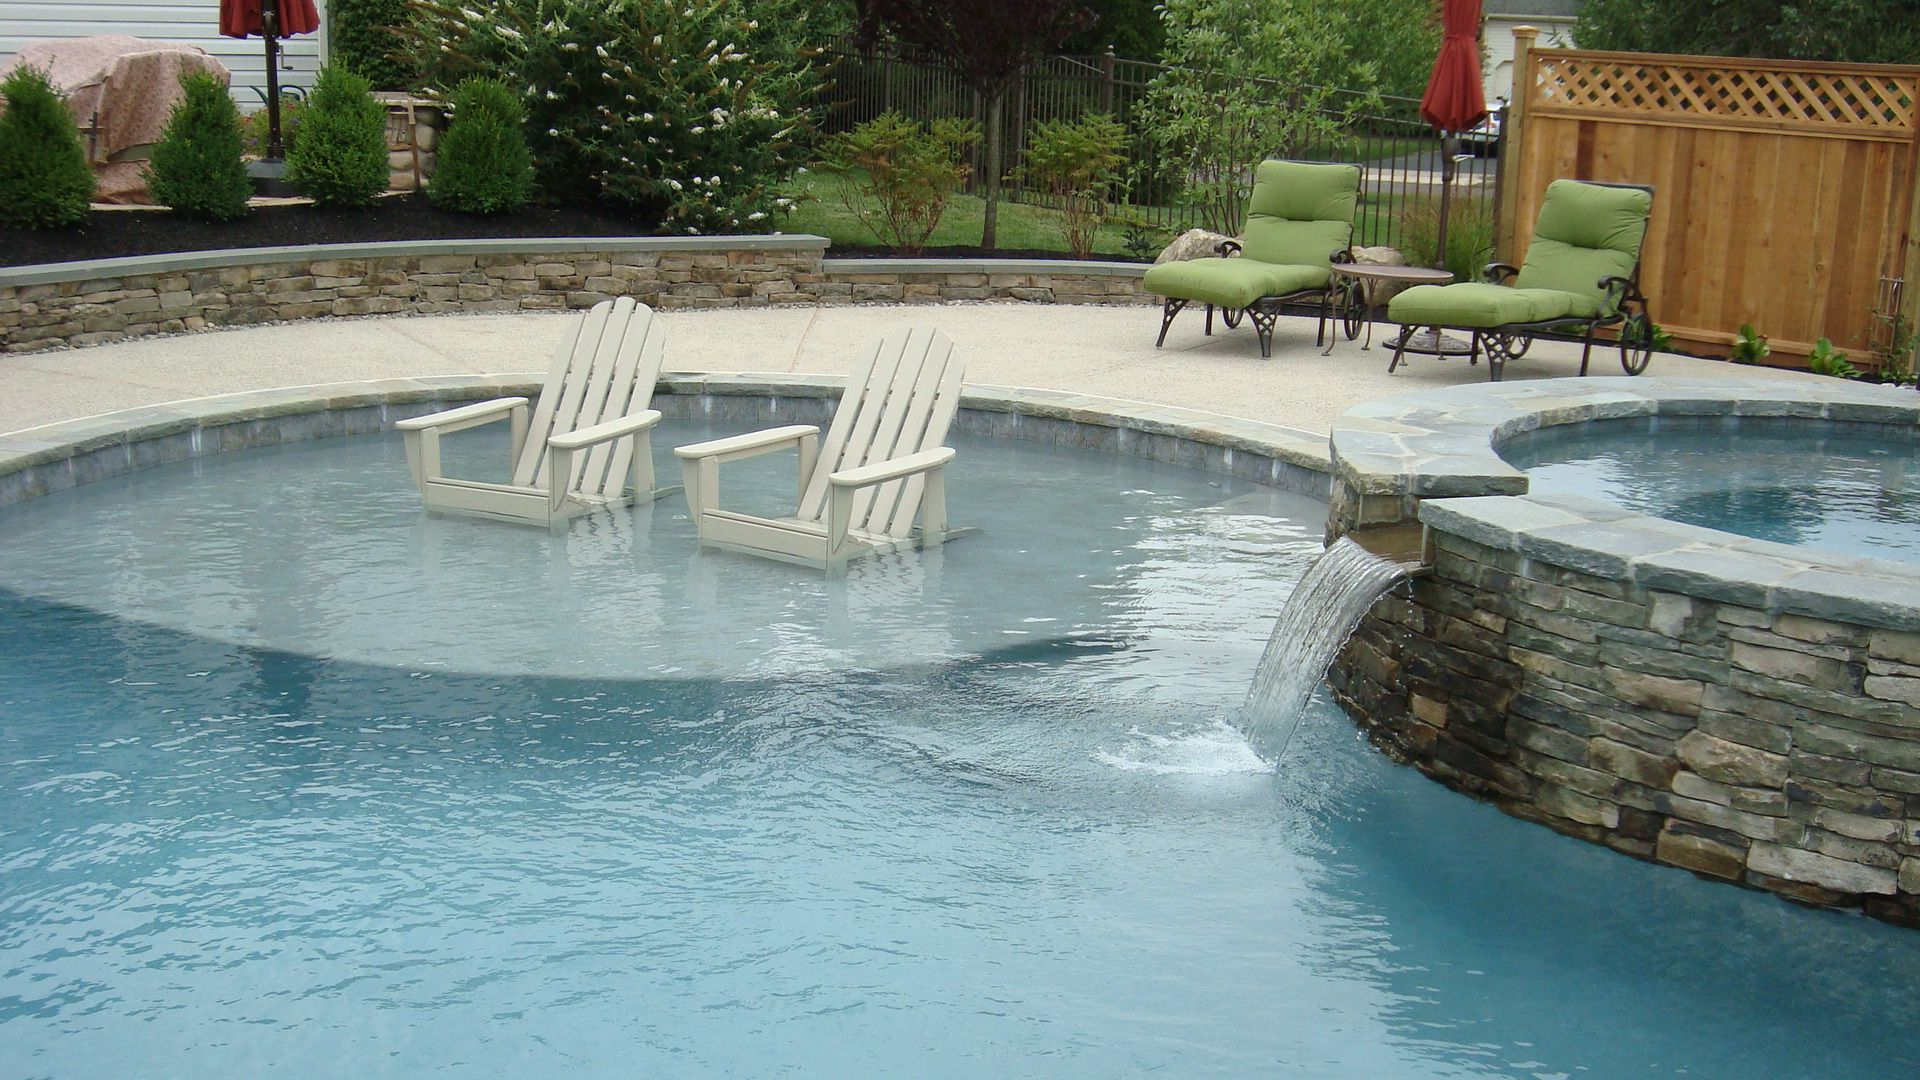 Pool Designs With Spa custom swimming pool with sun-shelf and raised spa | home